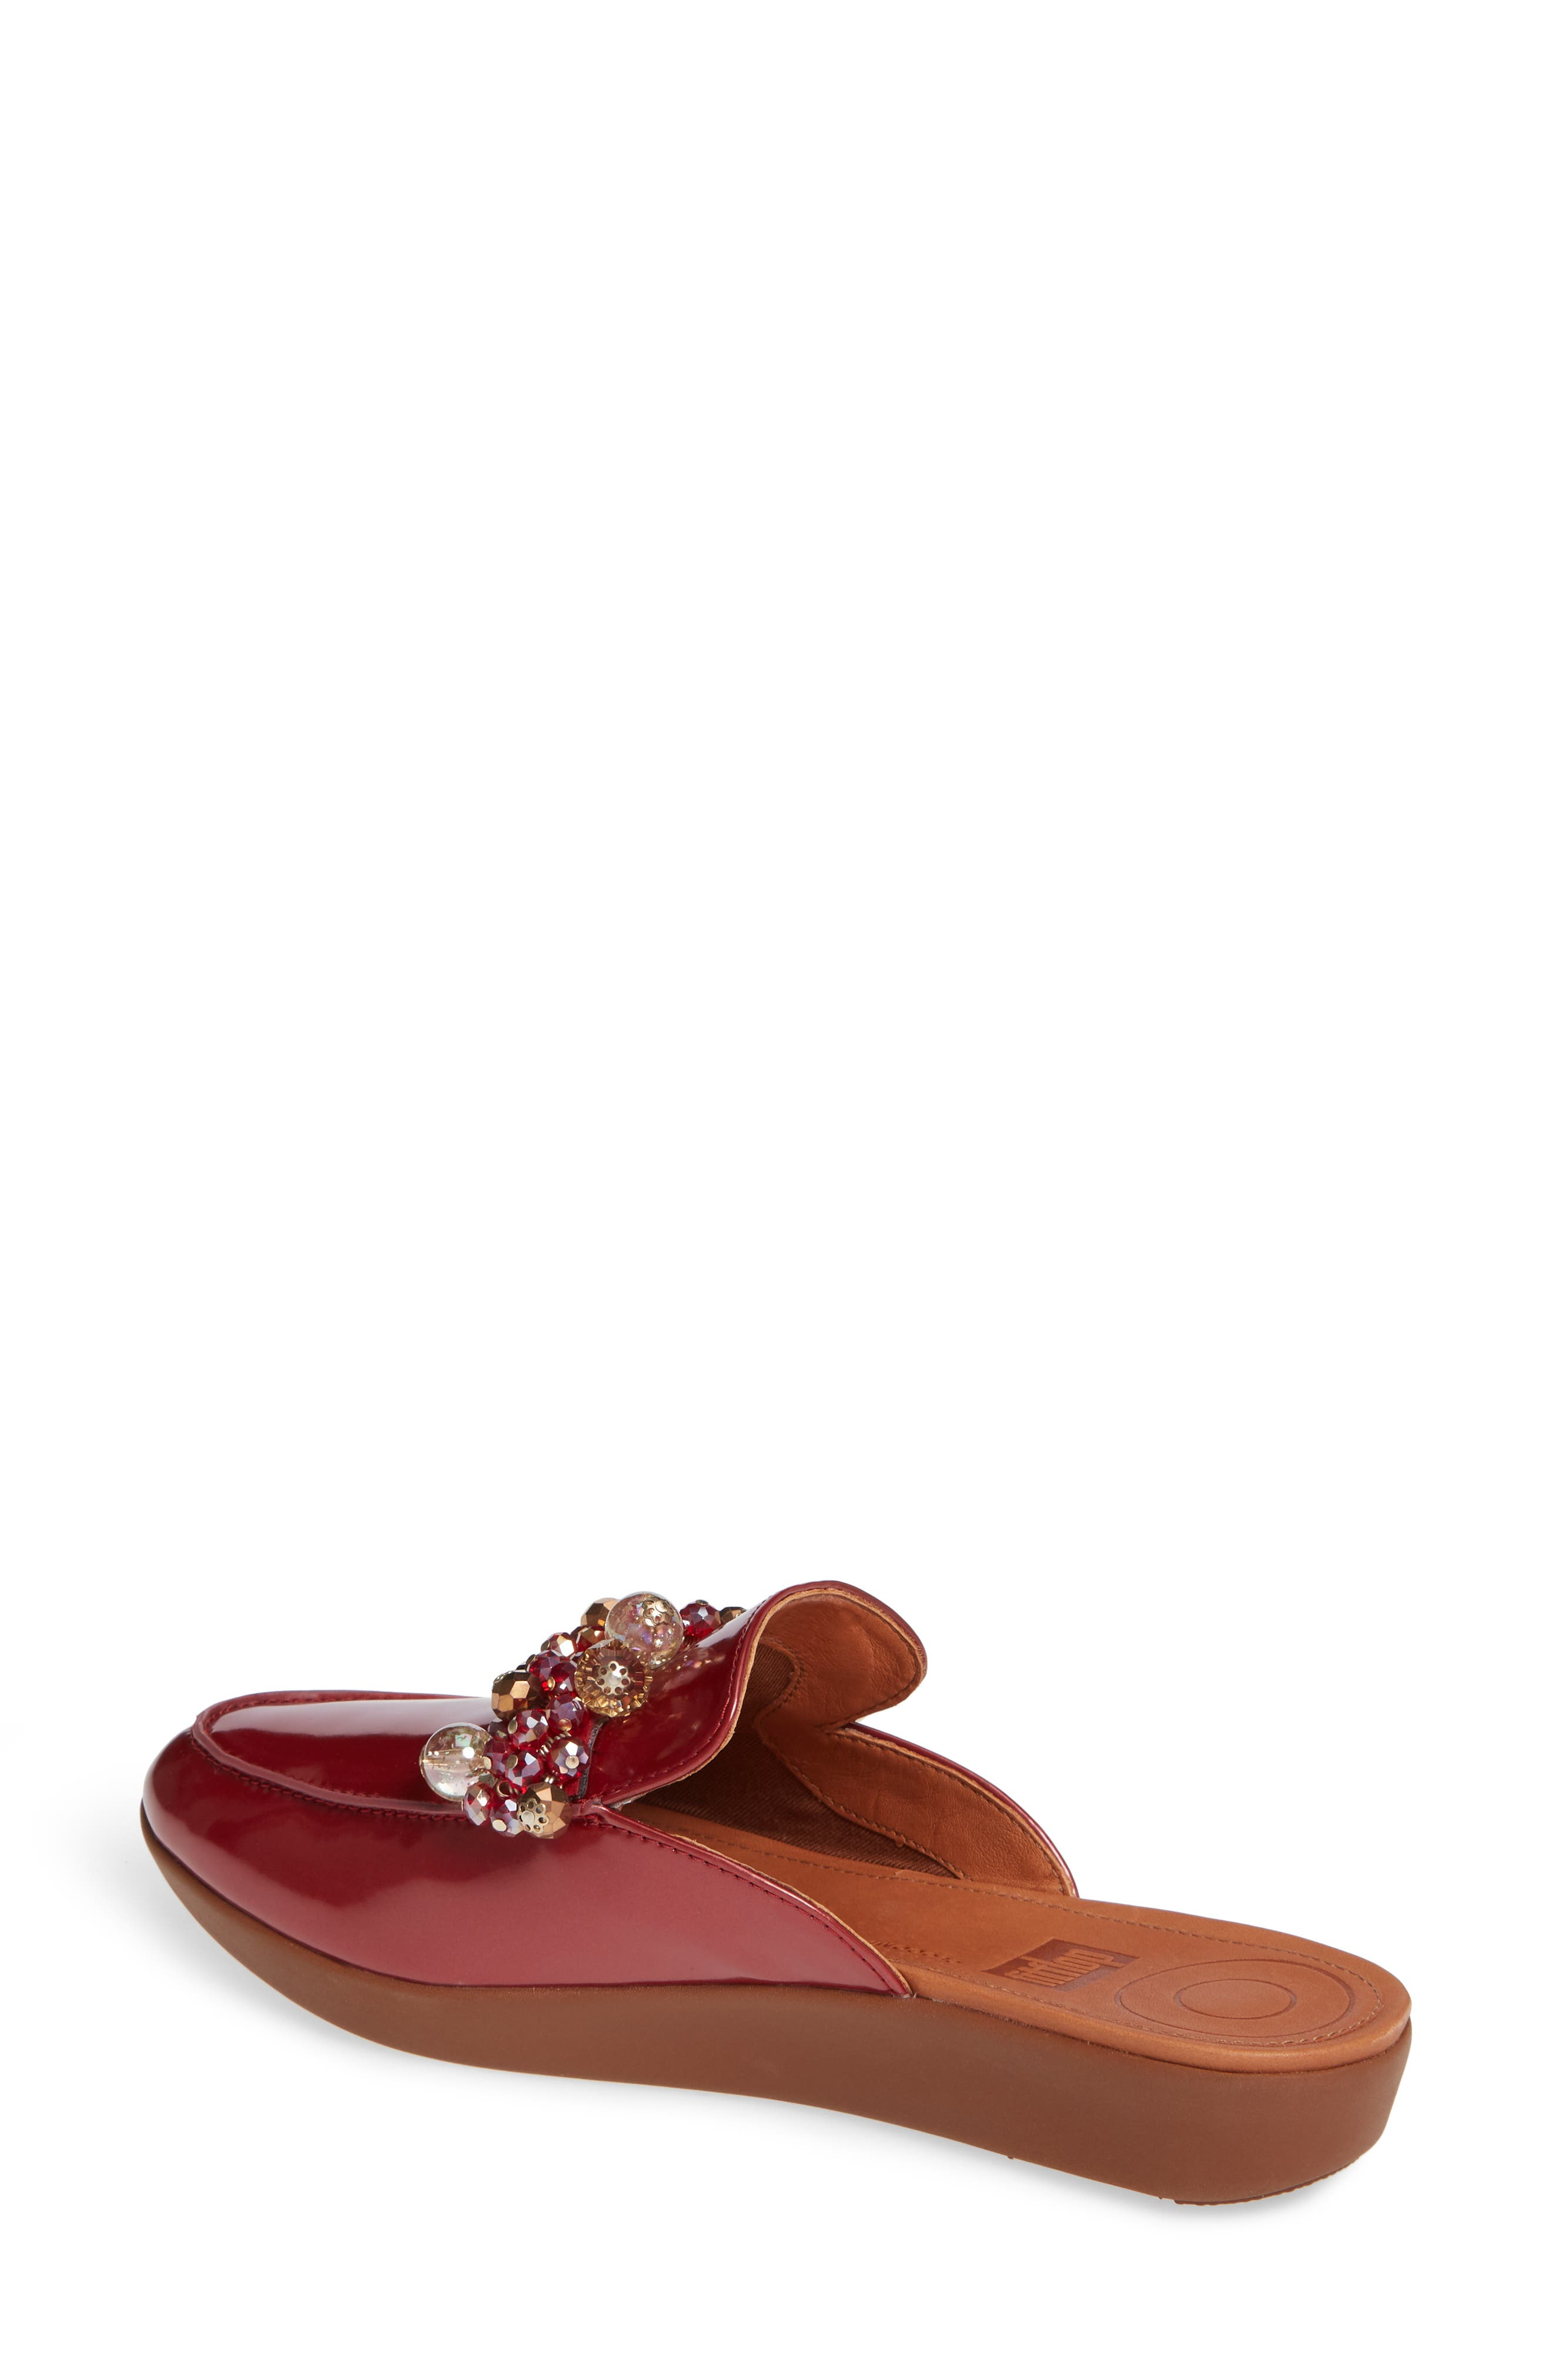 FITFLOP, Serene Beaded Mule, Alternate thumbnail 2, color, FIRE RED PATENT LEATHER